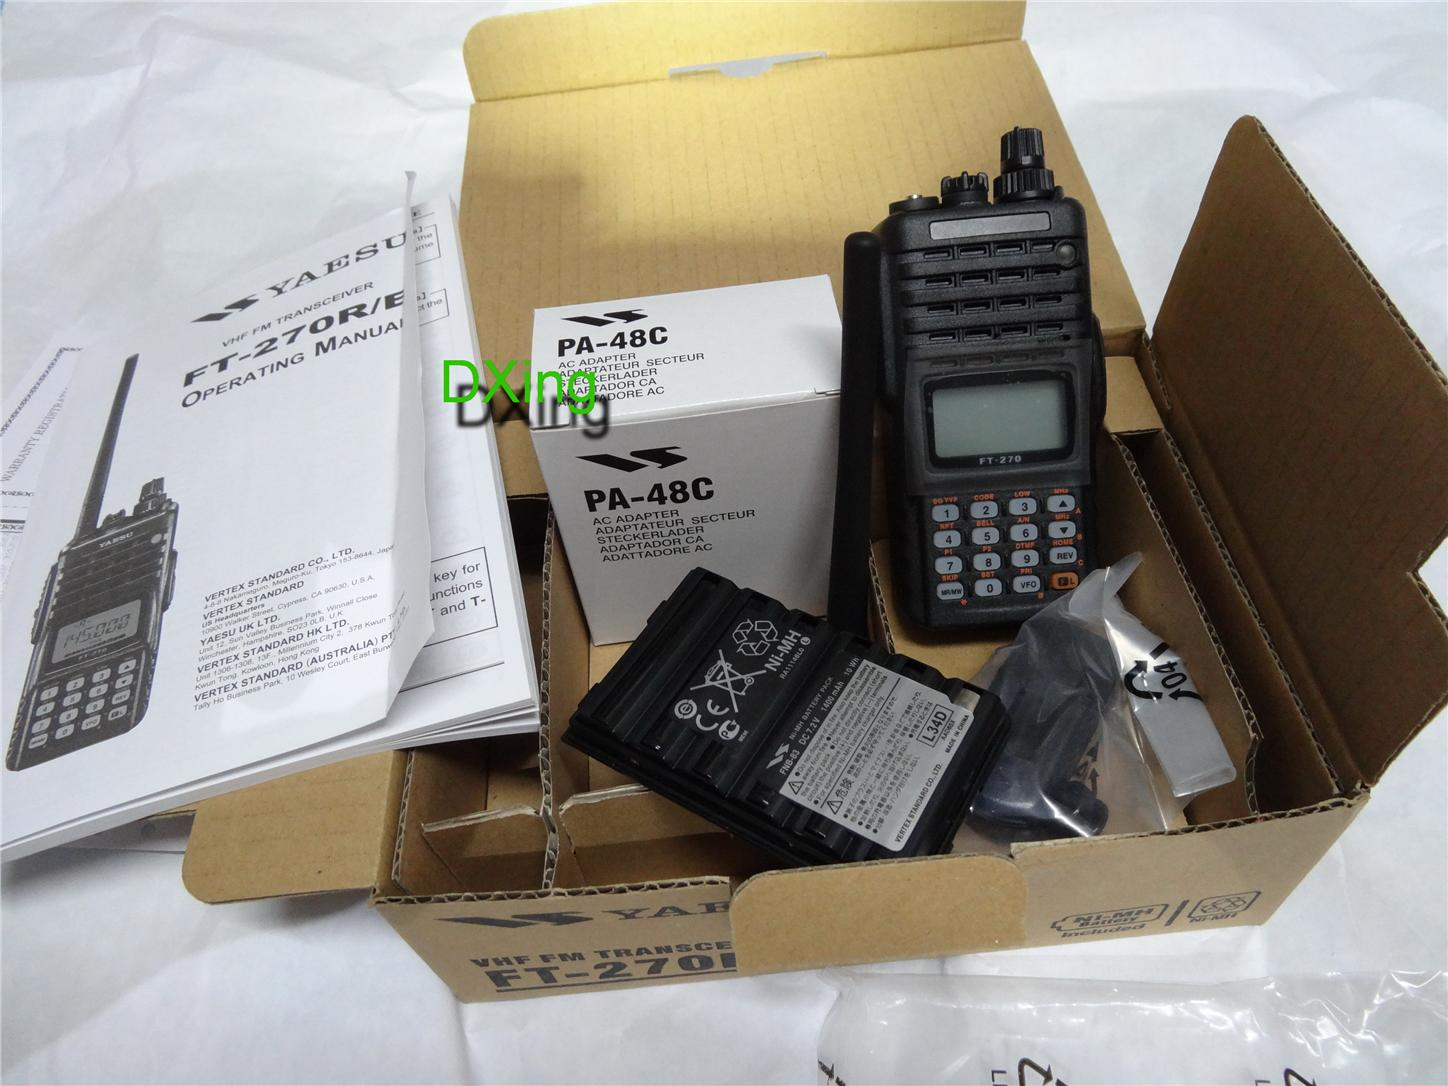 Original Yaesu FT-270R VHF Ham Radio/Amateur Radio/Radio Amatur/